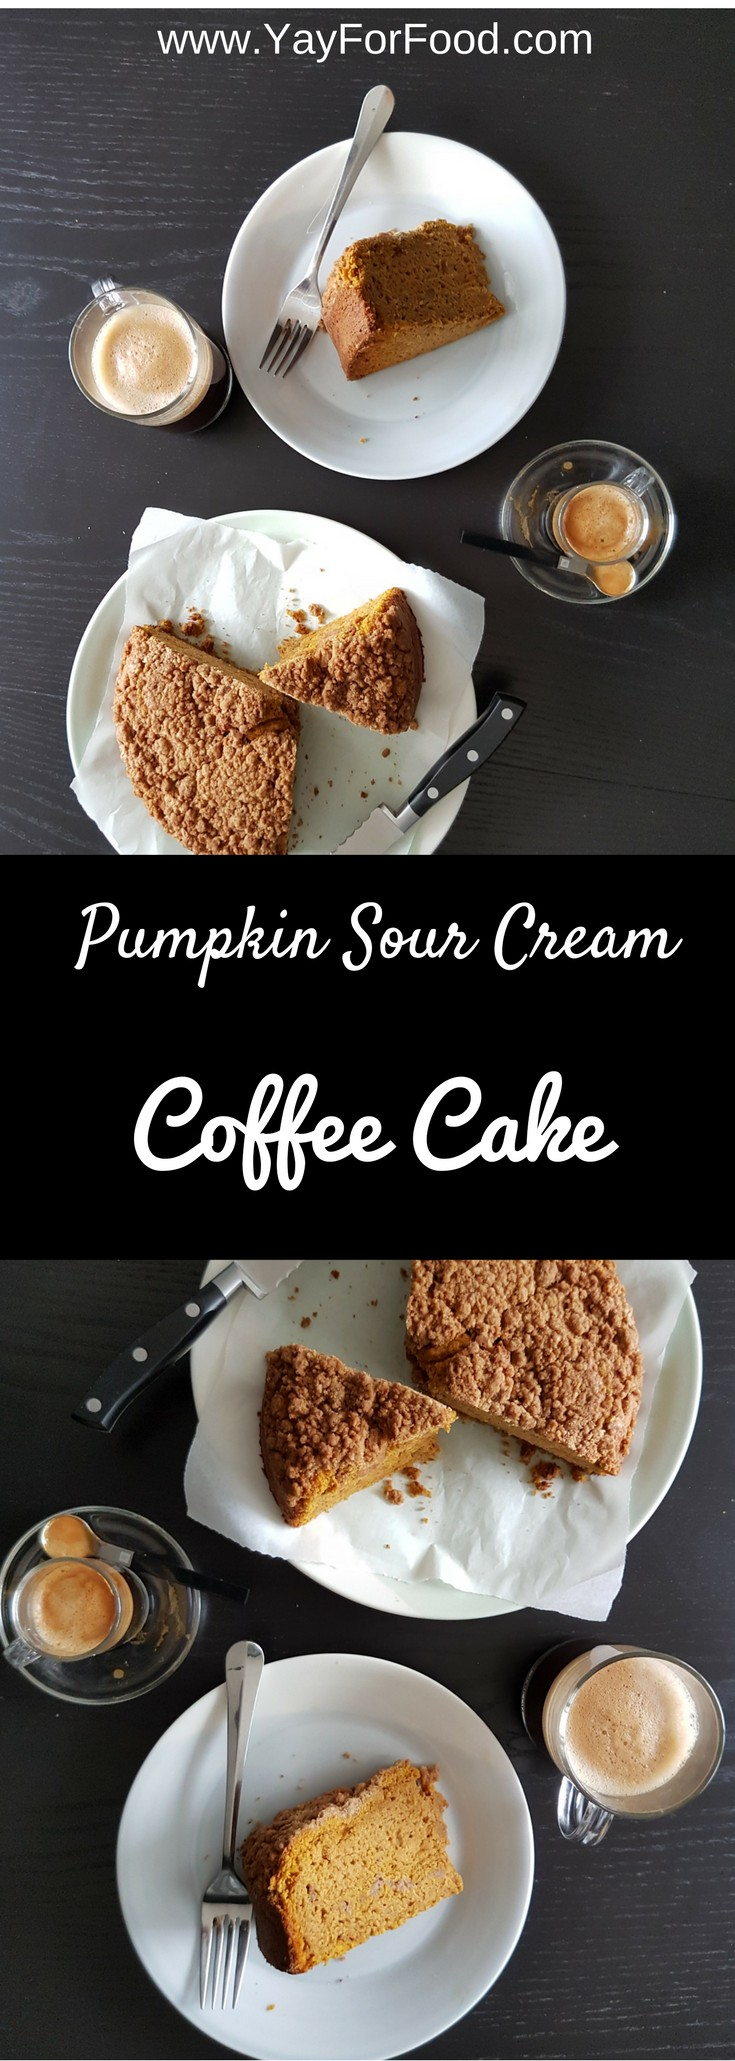 This delicious and moist coffee cake has wonderful pumpkin and spice flavours. The sweet and crunchy brown sugar topping makes this coffee cake so tasty!